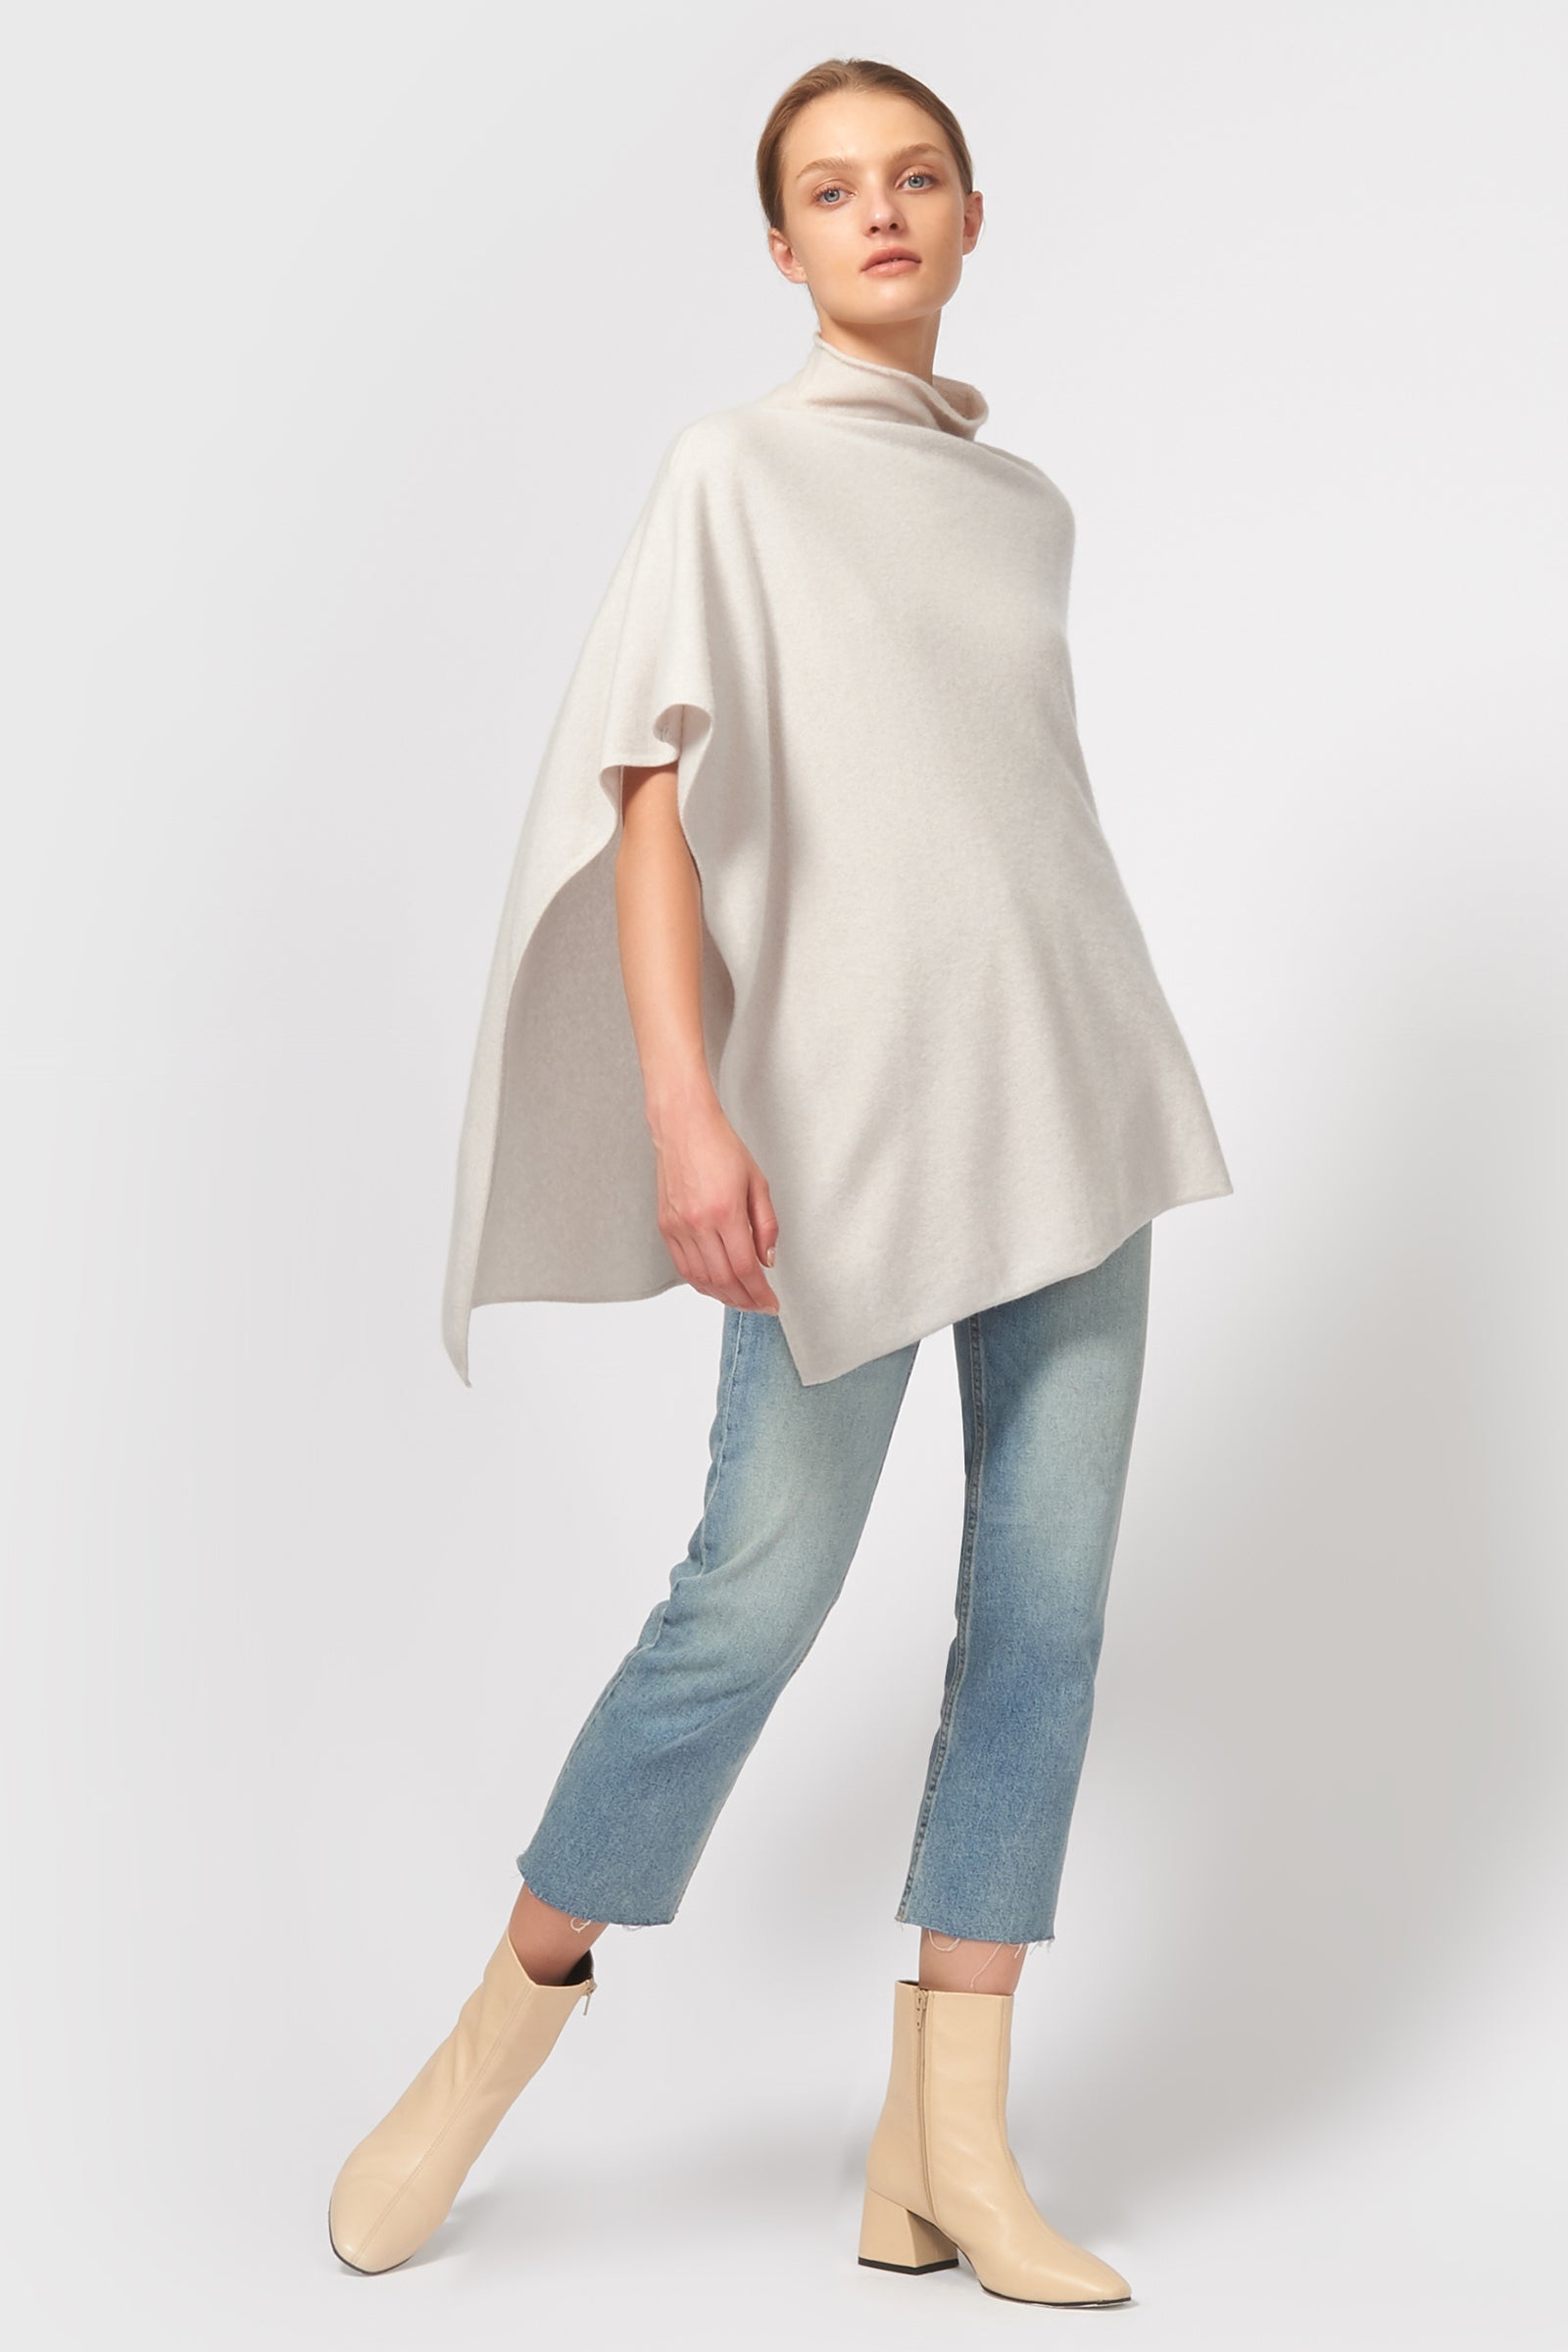 Kal Rieman Cashmere Poncho in Haze on Model Front Full View